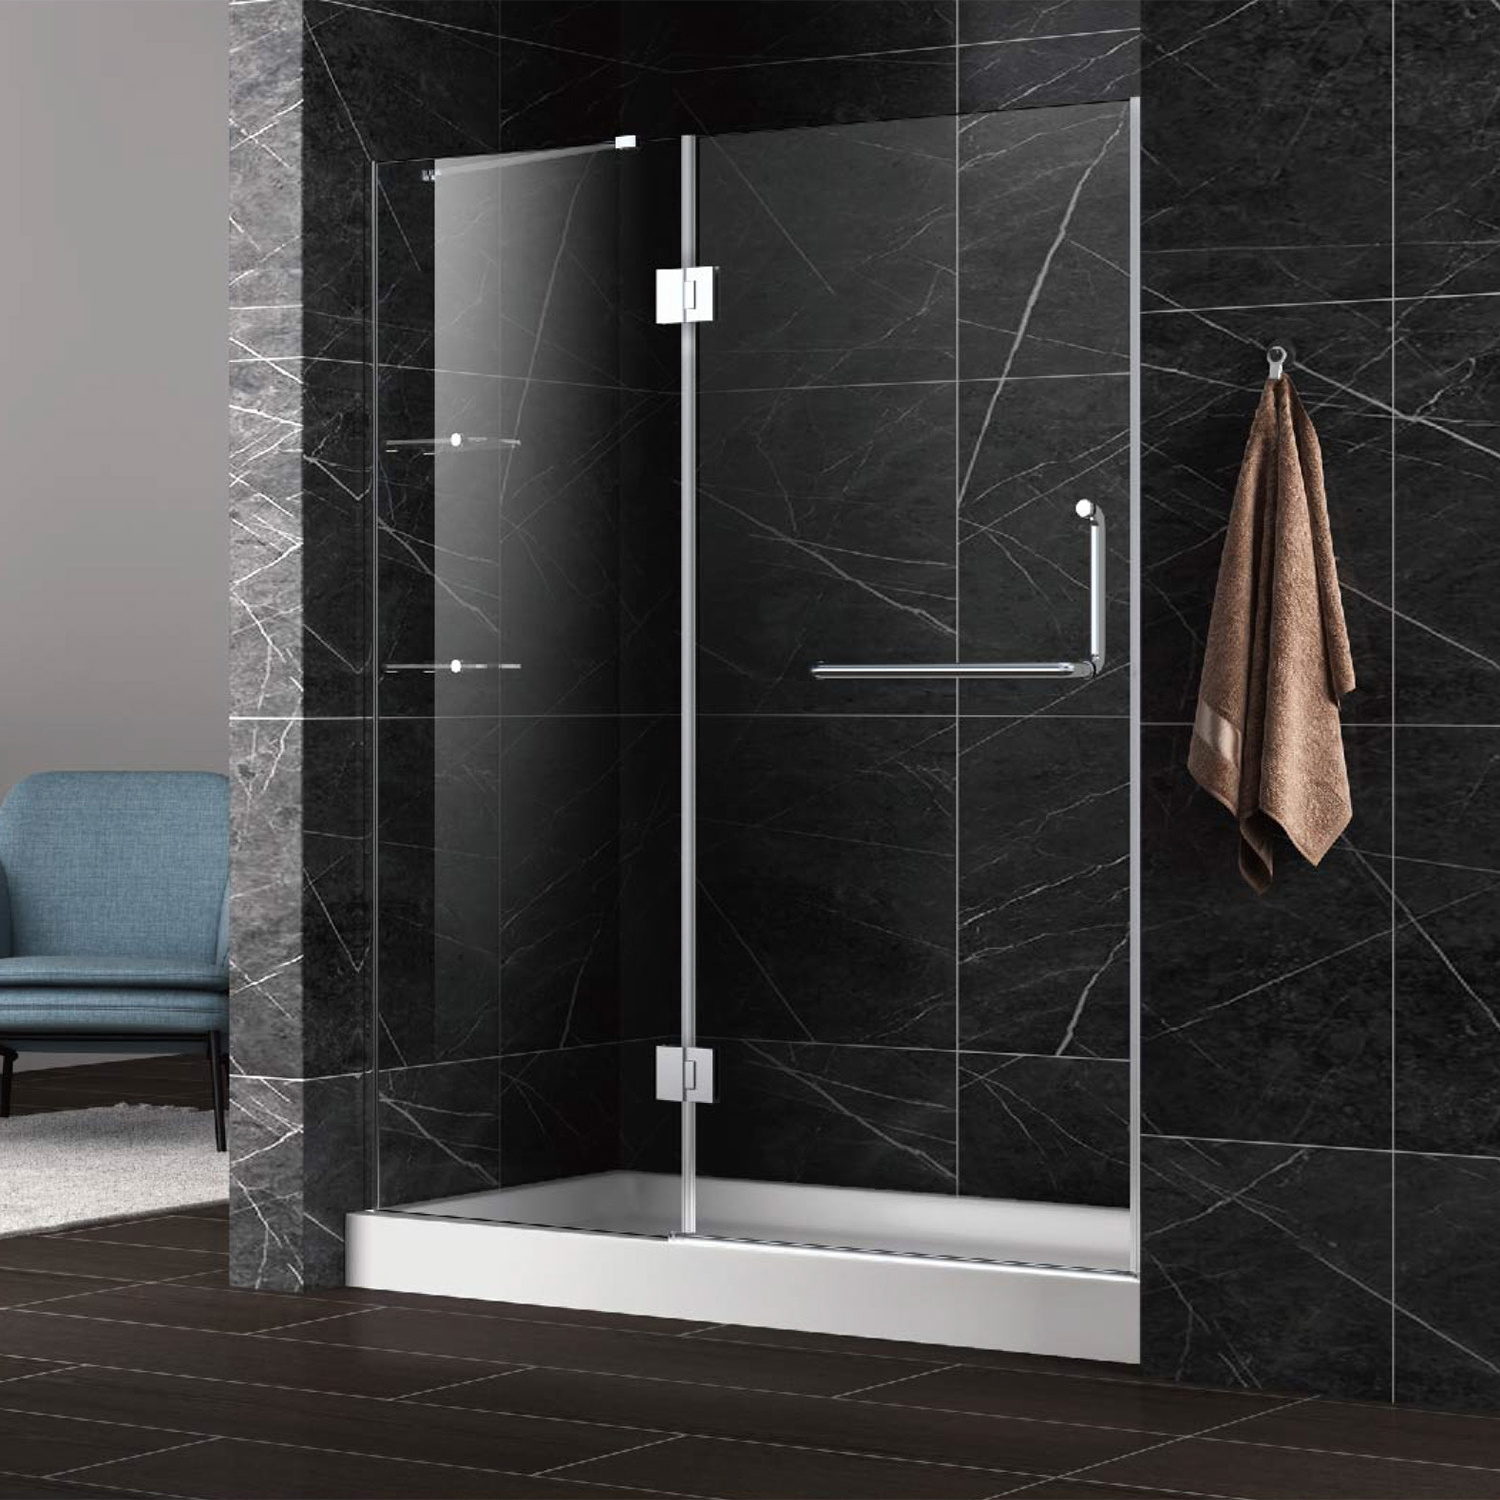 Frameless Hinged Shower Door Screen With Stainless Steel Towel Bar China Shower Door Shower Enclosure Made In China Com